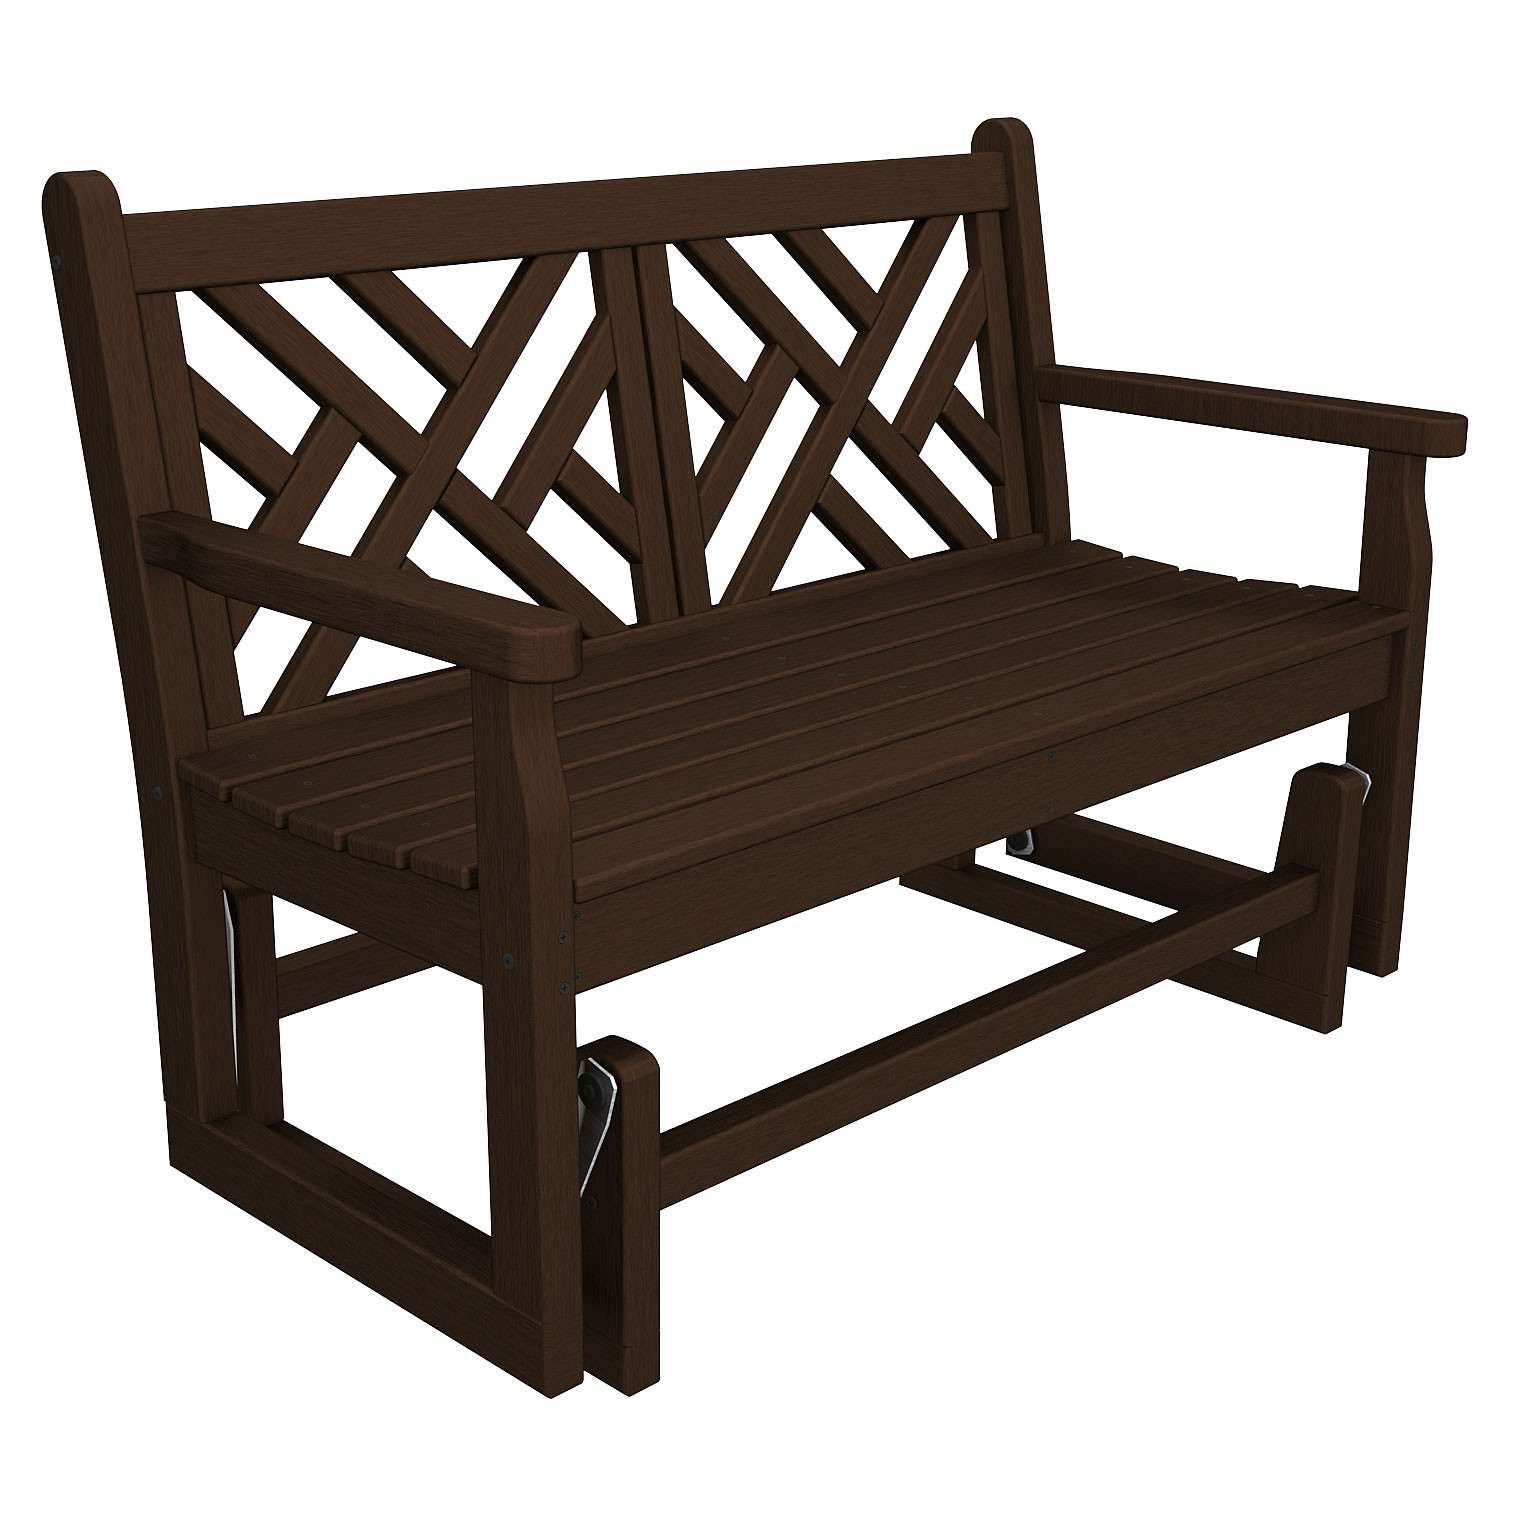 Polywood chippendale 48 in glider bench chippendale collection polywood outdoor furniture Polywood bench